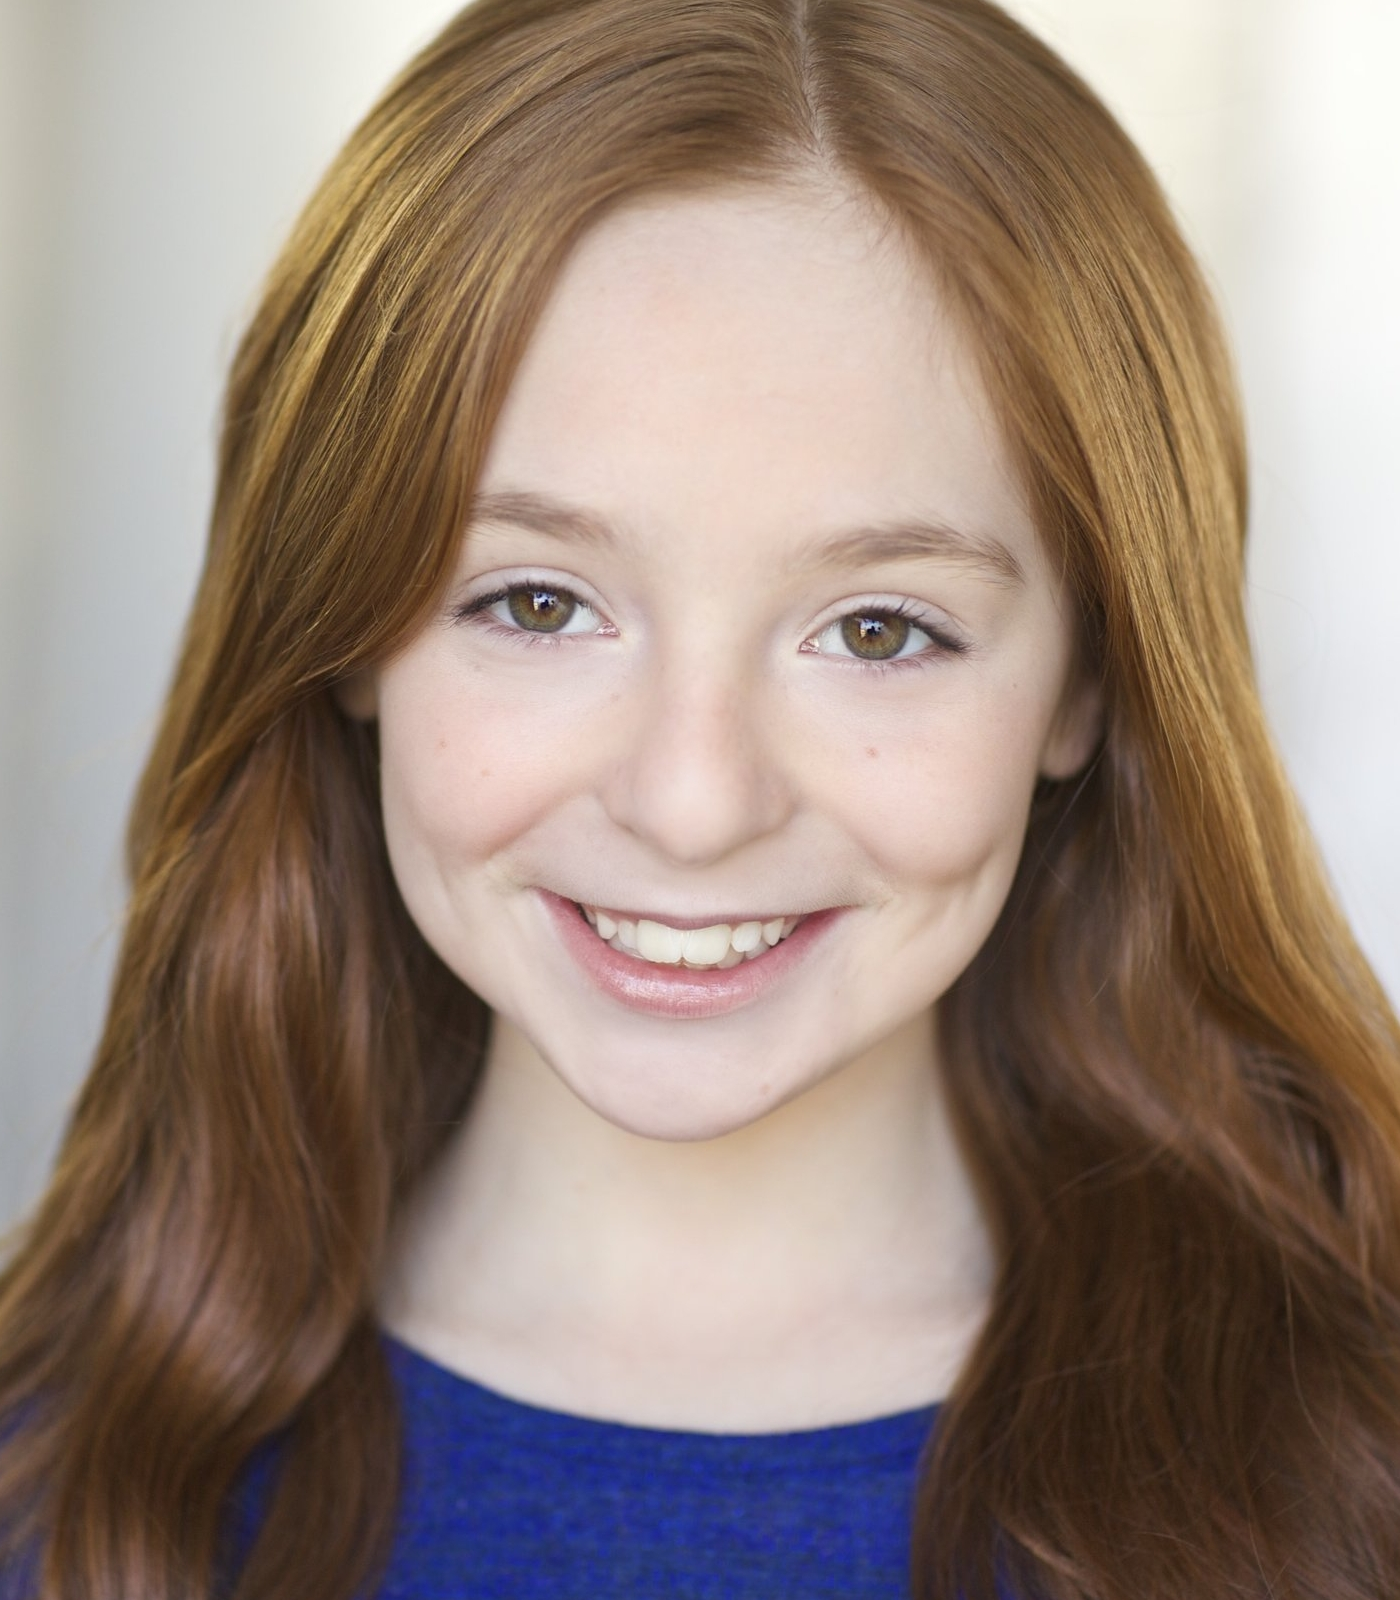 KATIE GREGIC - The Sound of Music National Tour as Brigitta von Trapp